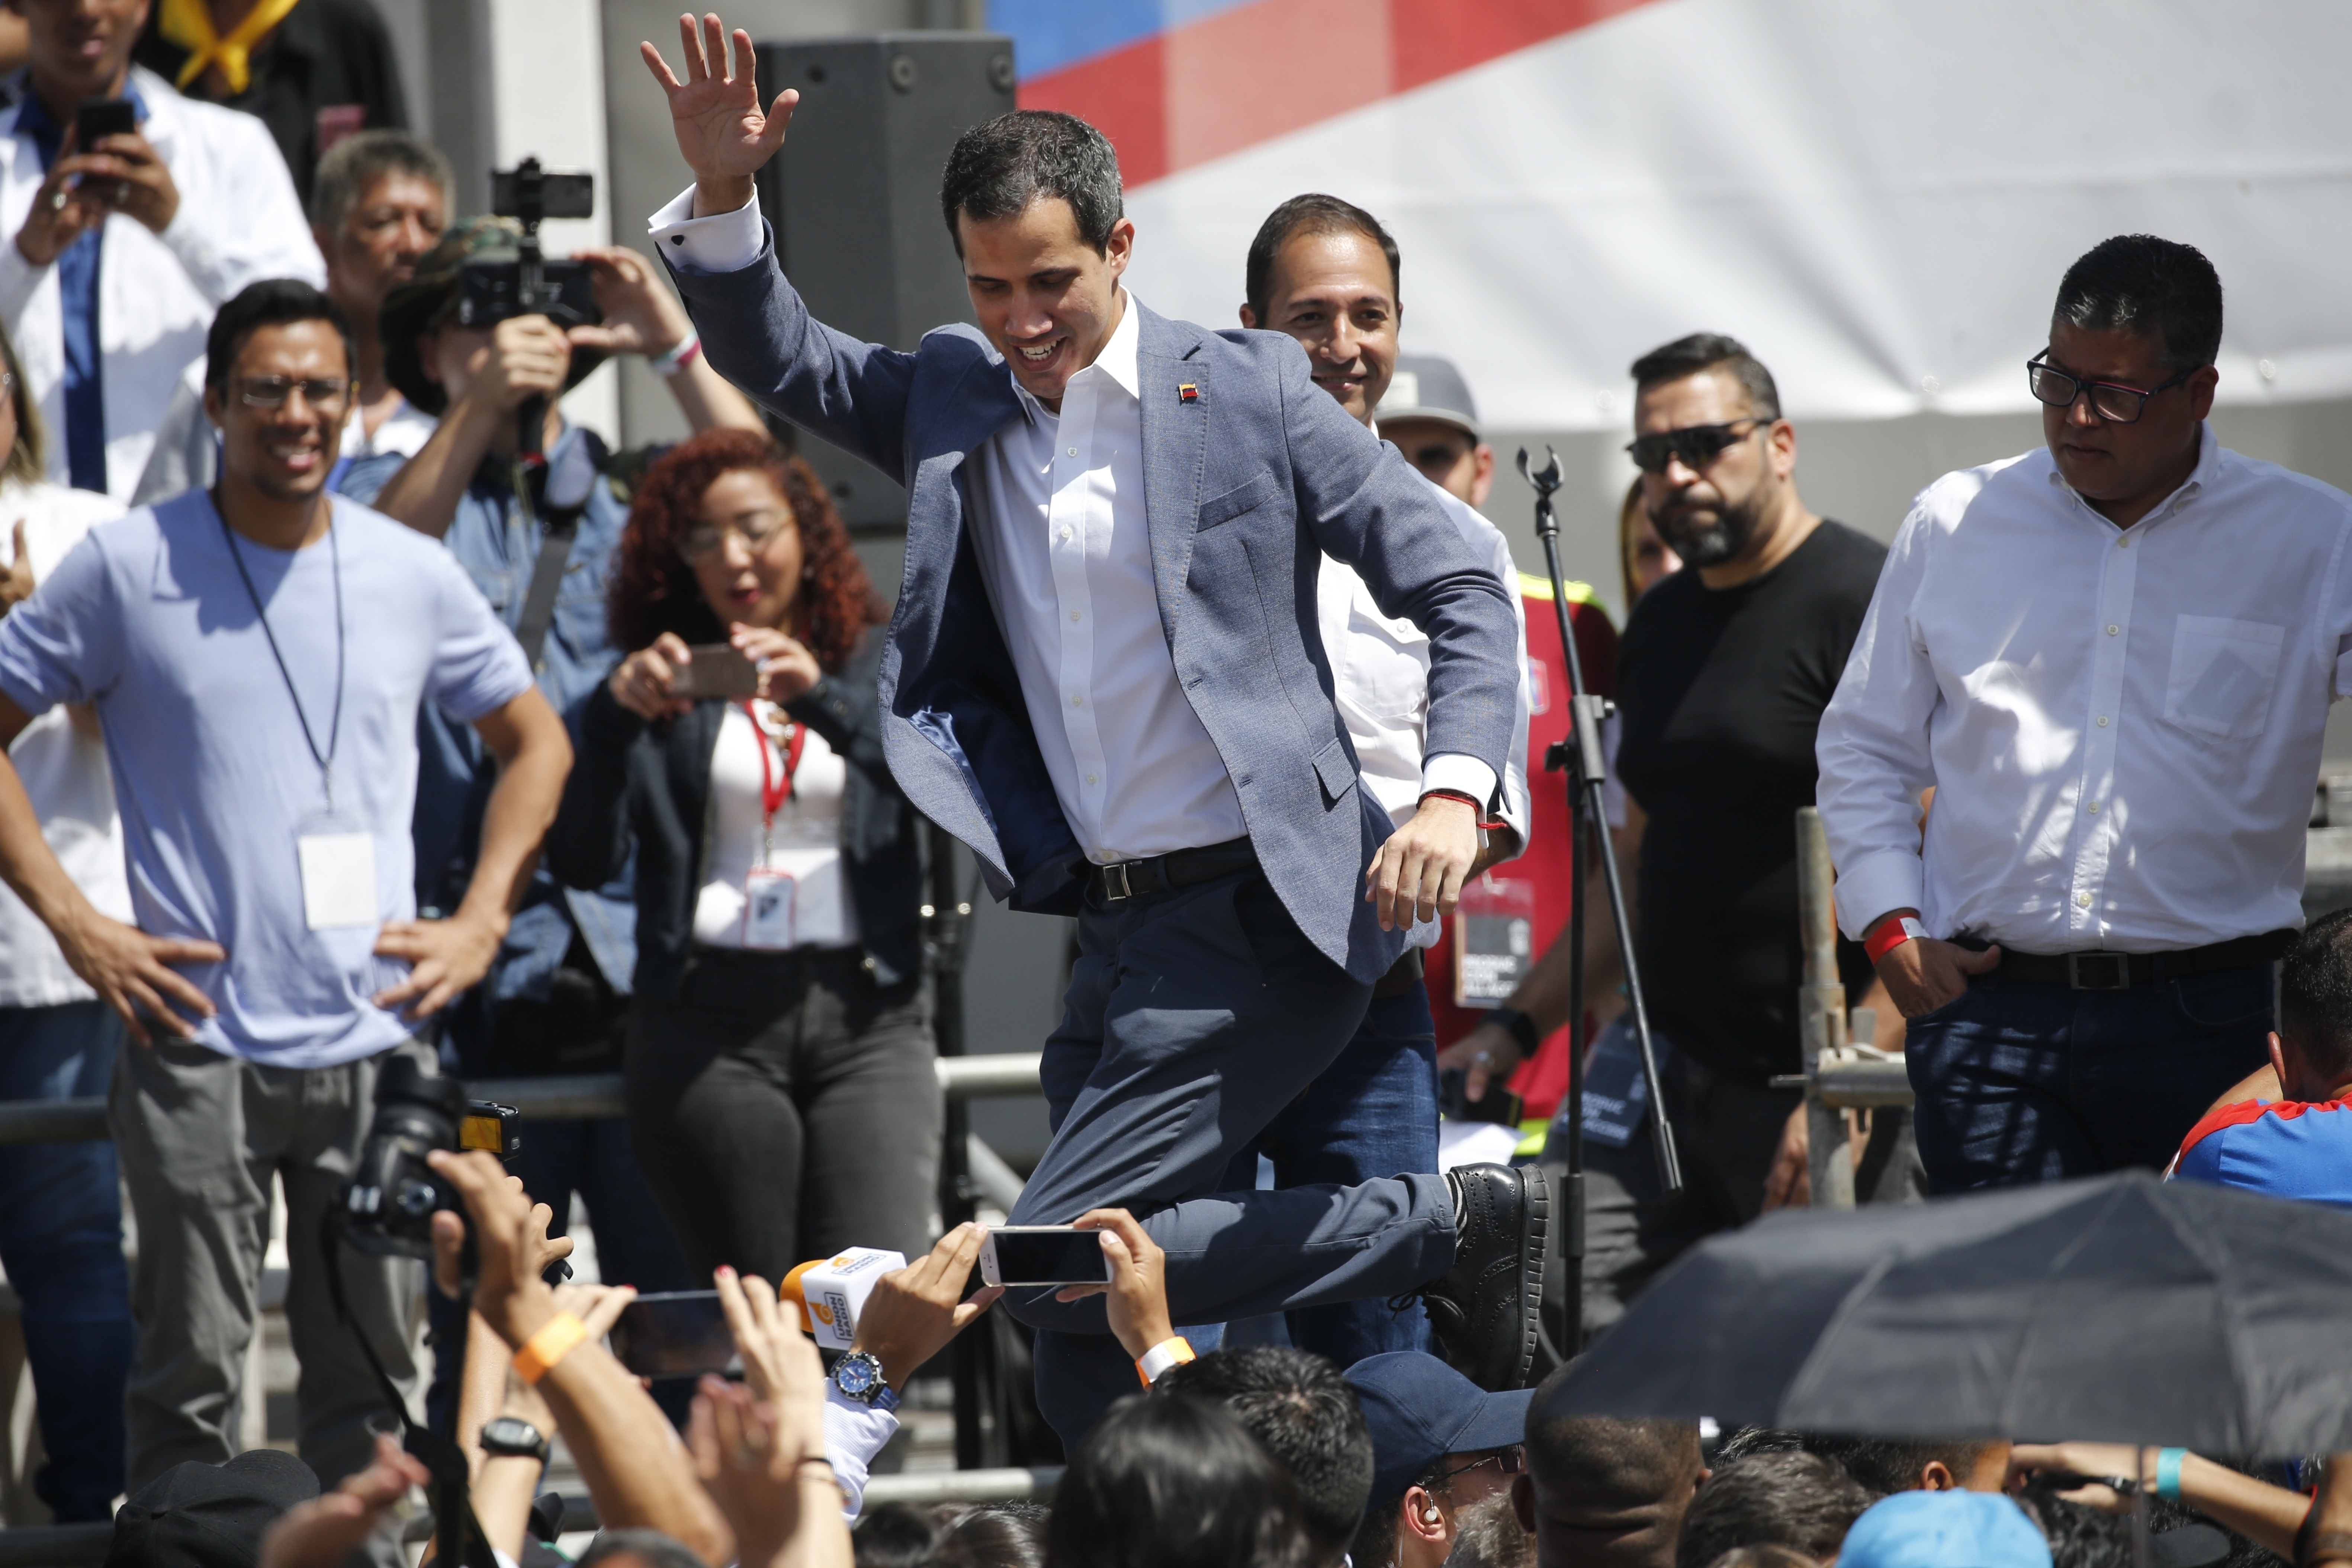 Venezuela's self-proclaimed interim president Juan Guiado greets the crowd after climbing onstage, during an event to swear in nurses, doctors, professionals and others, as the group that will help with the arrival and distribution of humanitarian aid in Venezuela, in Caracas, Venezuela, Saturday, Feb. 16, 2019. The U.S. Air Force has begun flying tons of aid to a Colombian town on the Venezuelan border as part of an effort meant to undermine socialist President Nicolas Maduro. The first of three C-17 cargo planes has flown from Homestead Air Reserve Base in Florida and landed in the town of Cucuta. (AP Photo/Ariana Cubillos)